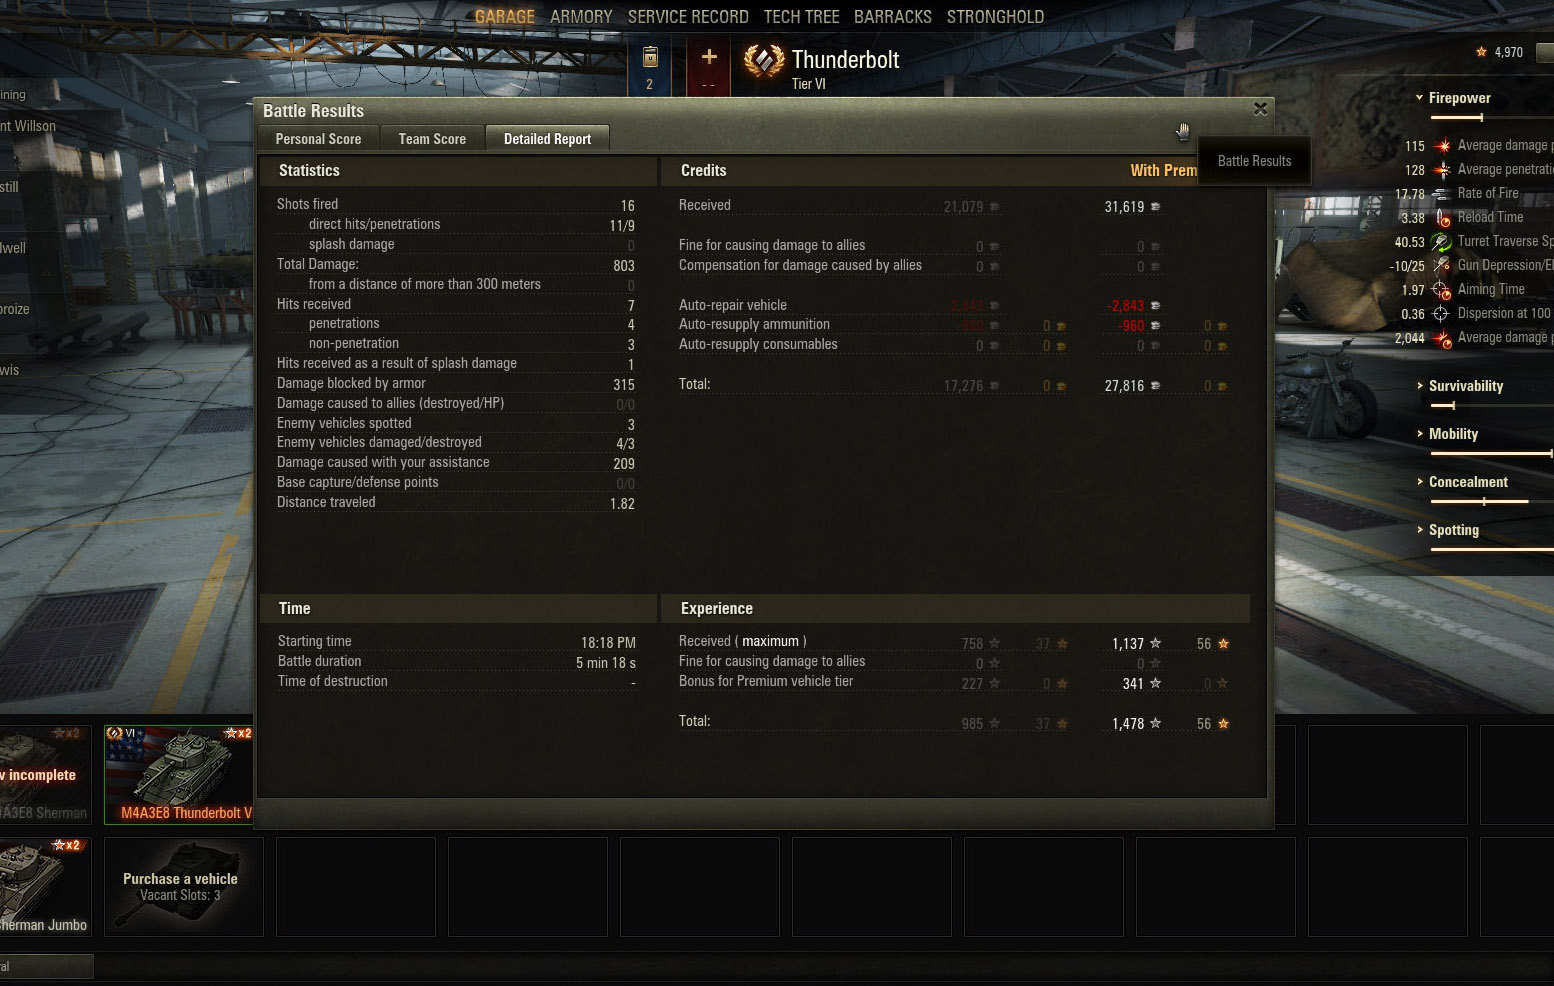 We're no unicum (or even above-average) players here, but with the Thunderbolt we were still able to pull in a modest amount of credits.